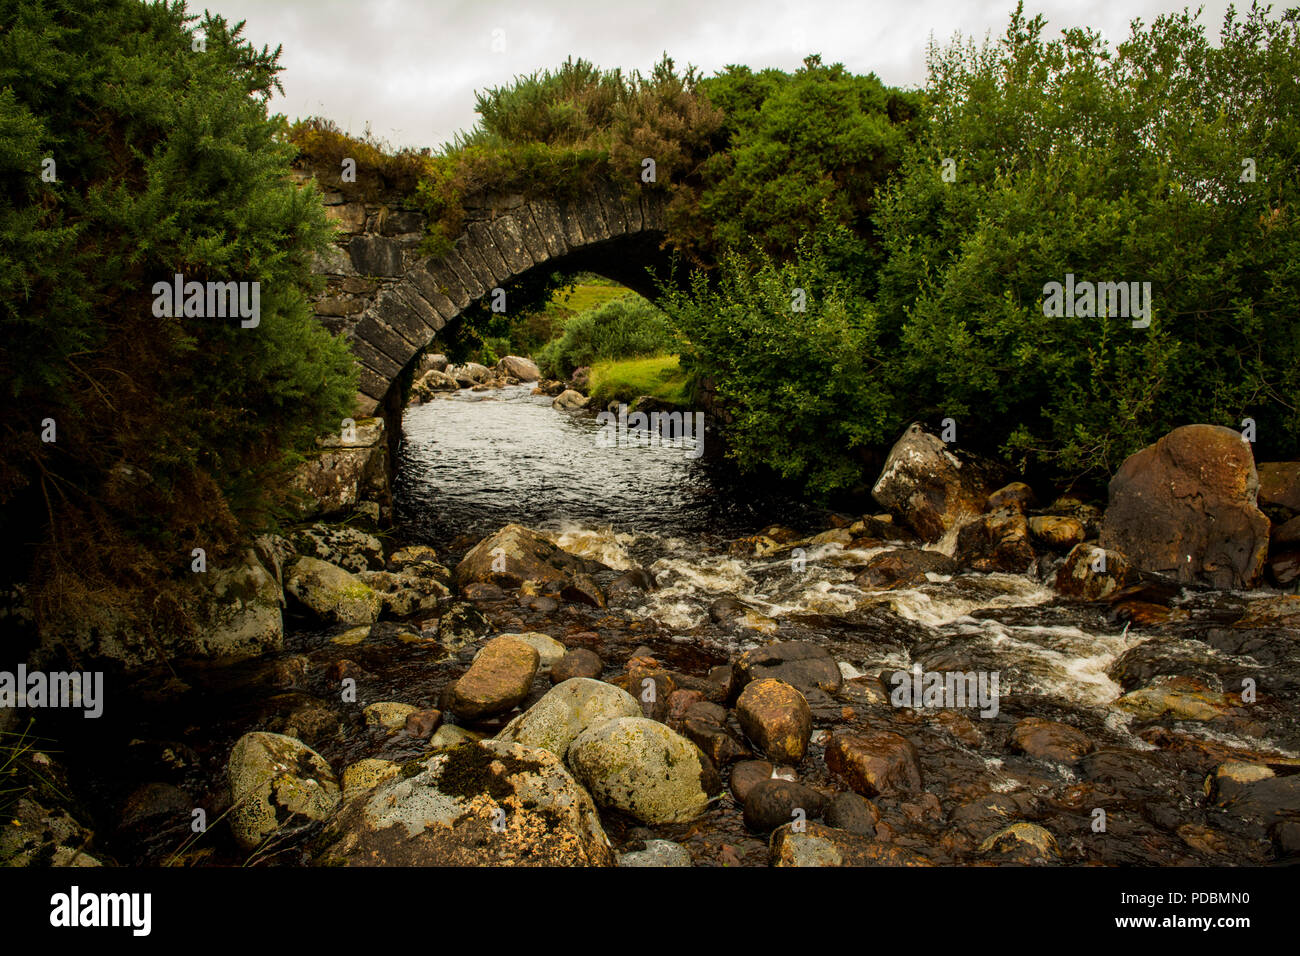 Stone Bridge The Poisoned Glen Dunlewey Gweedore Donegal Ireland - Stock Image